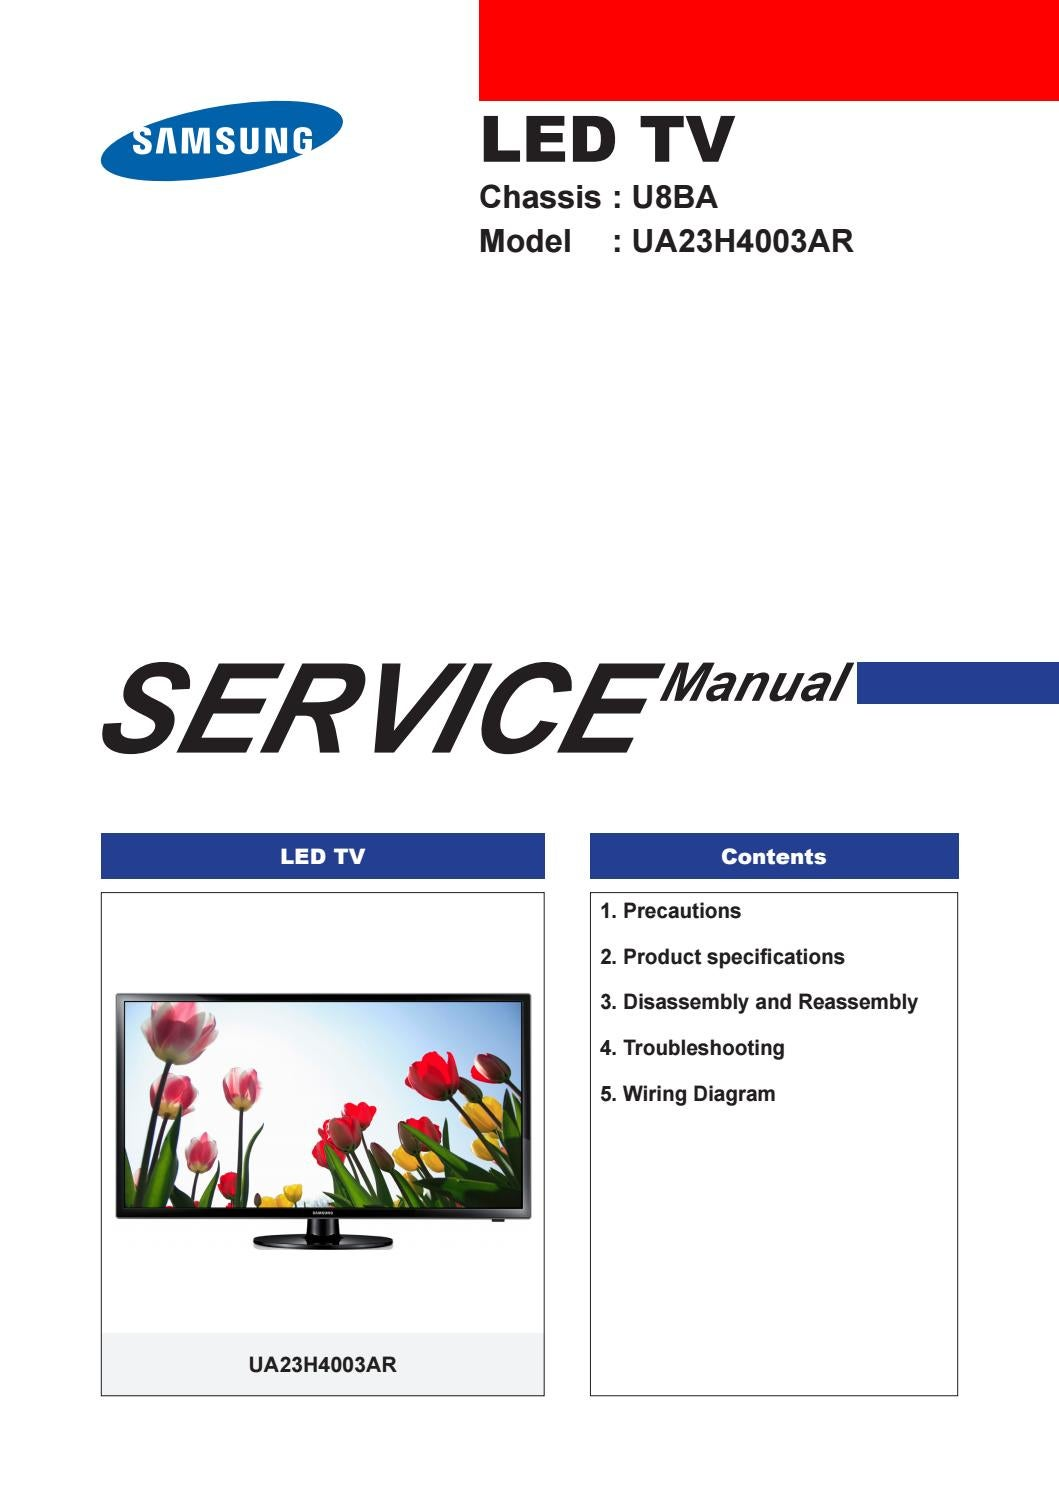 Manual De Servio Tv Led Samsung Ue26d4003 Chassis U57e By Portal Da Lcd Schematic Diagram On Plasma Do Televisor Marca Modelo Ua23h4003r U8ba